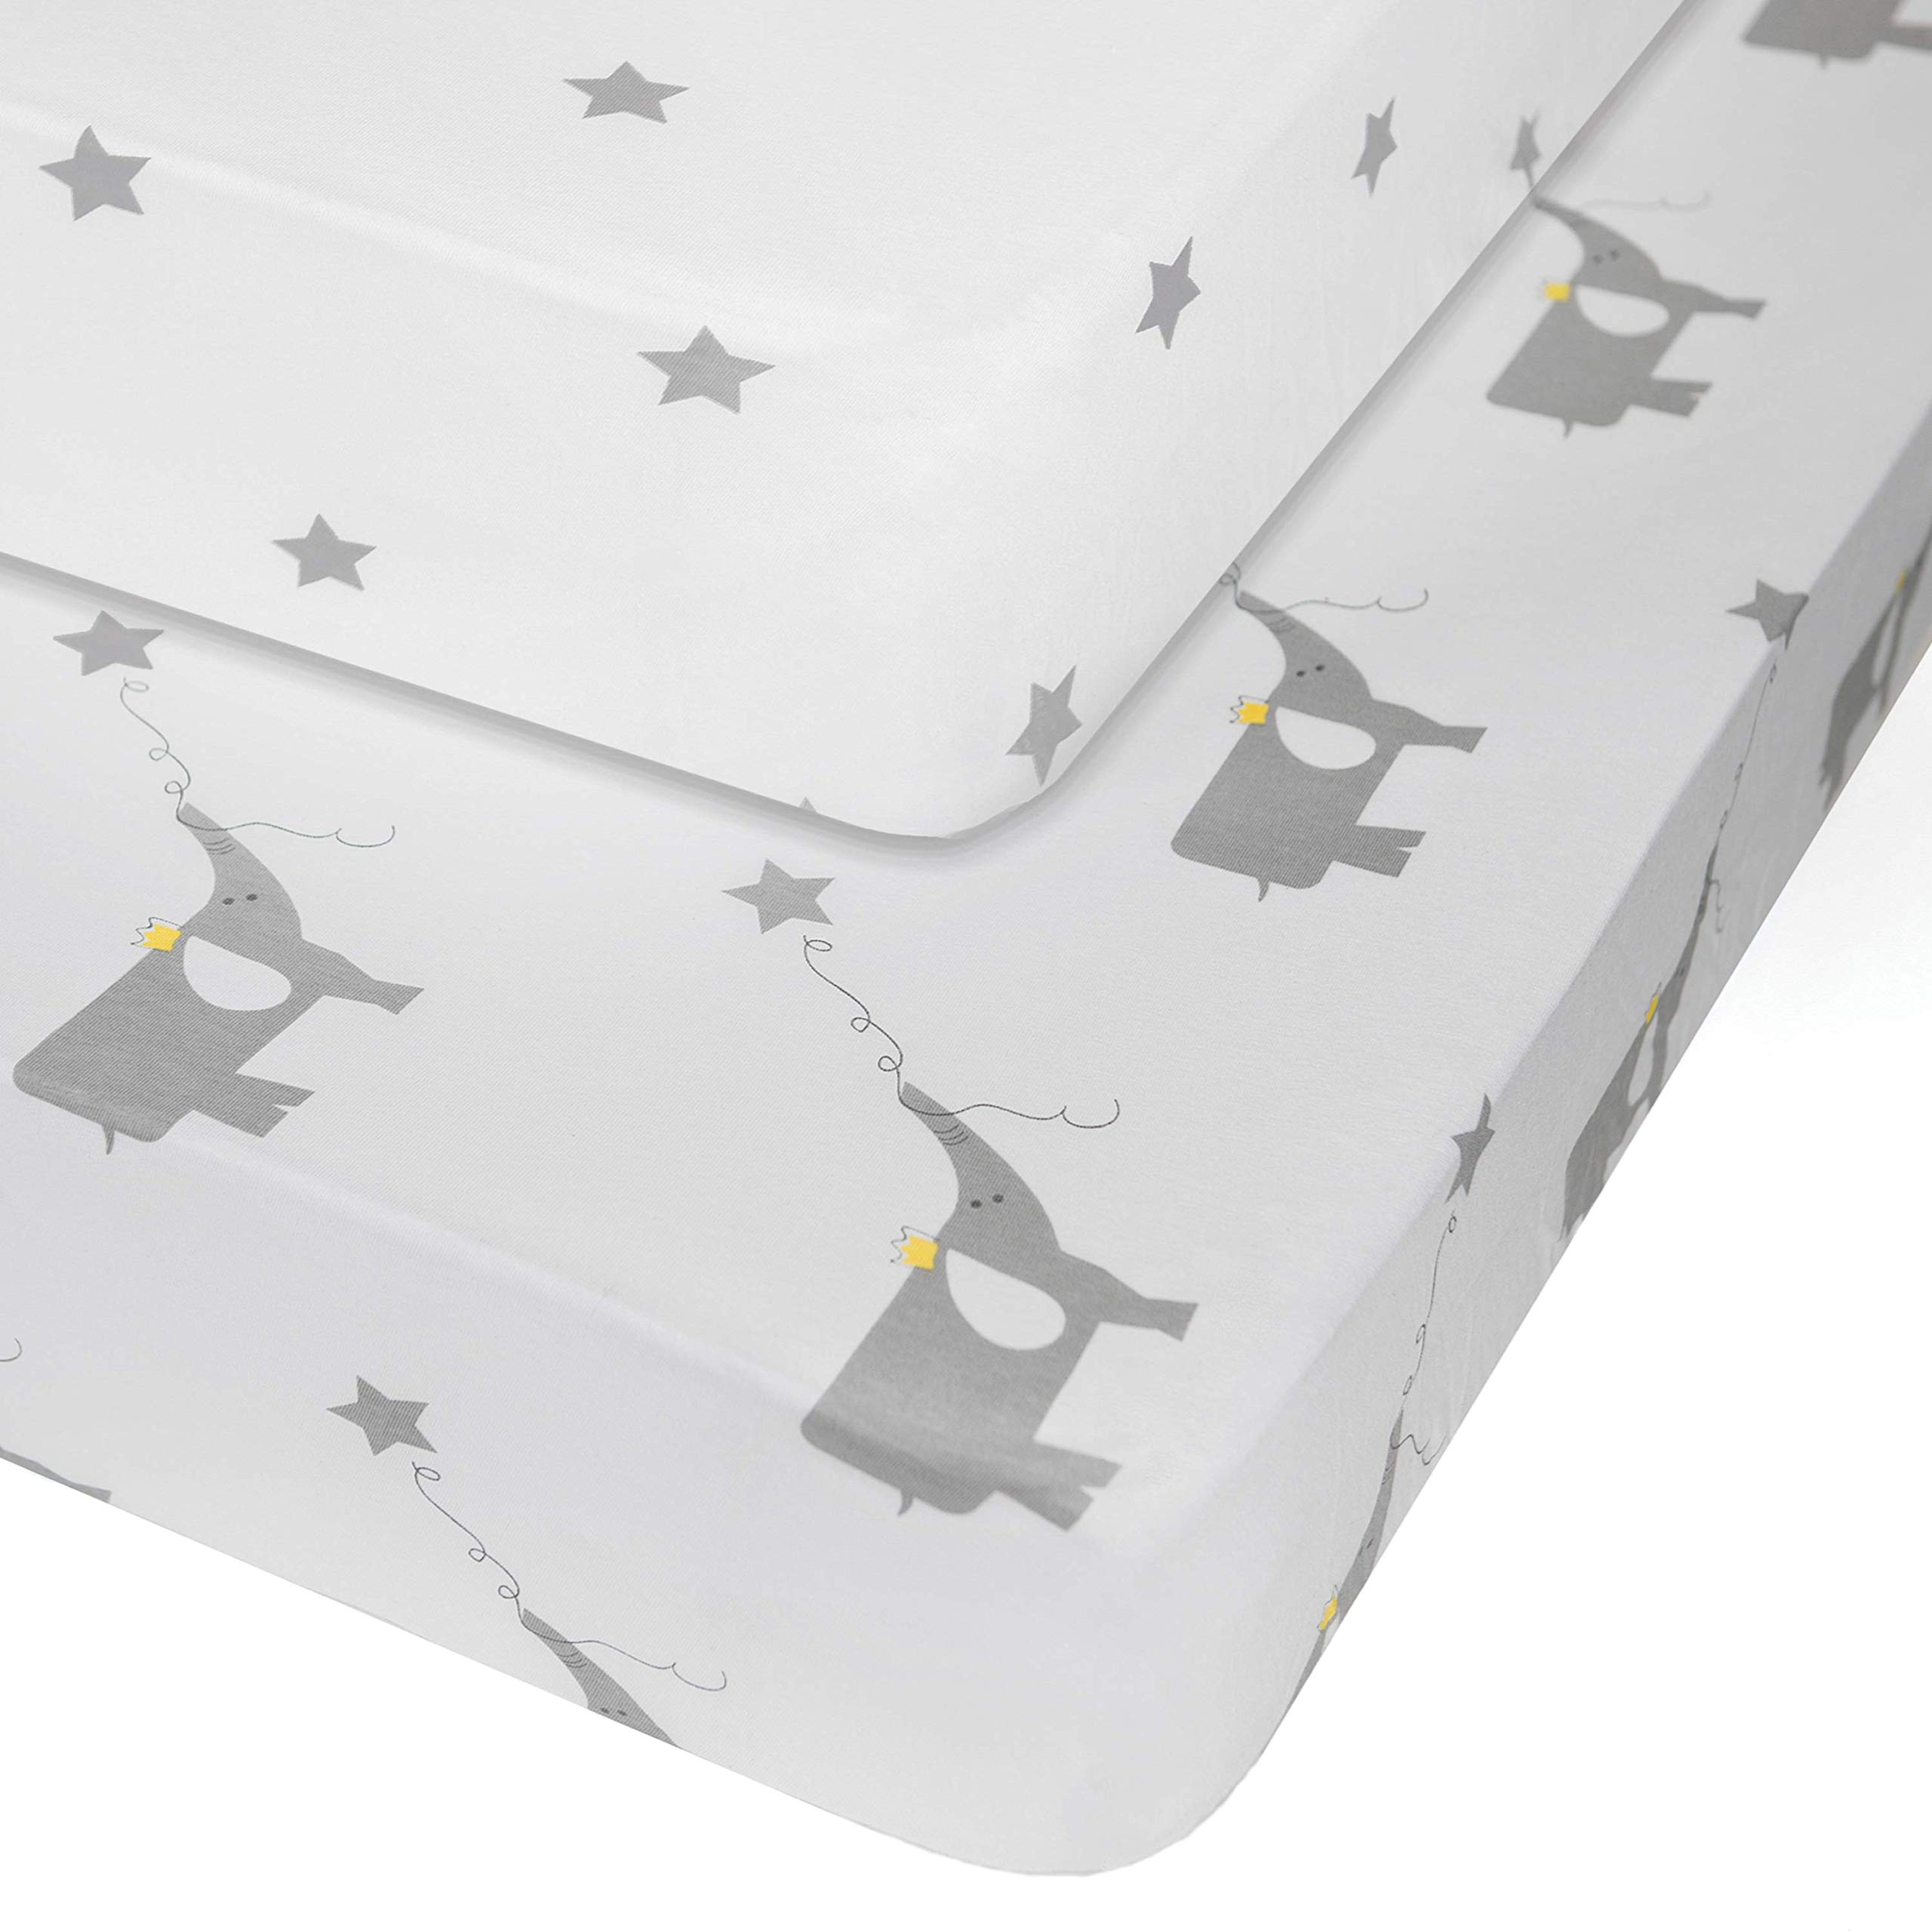 Crib sheets - 100% ORGANIC JERSEY COTTON - 2pk Unisex - Best baby shower gift for boy or girl - by My Little North Star